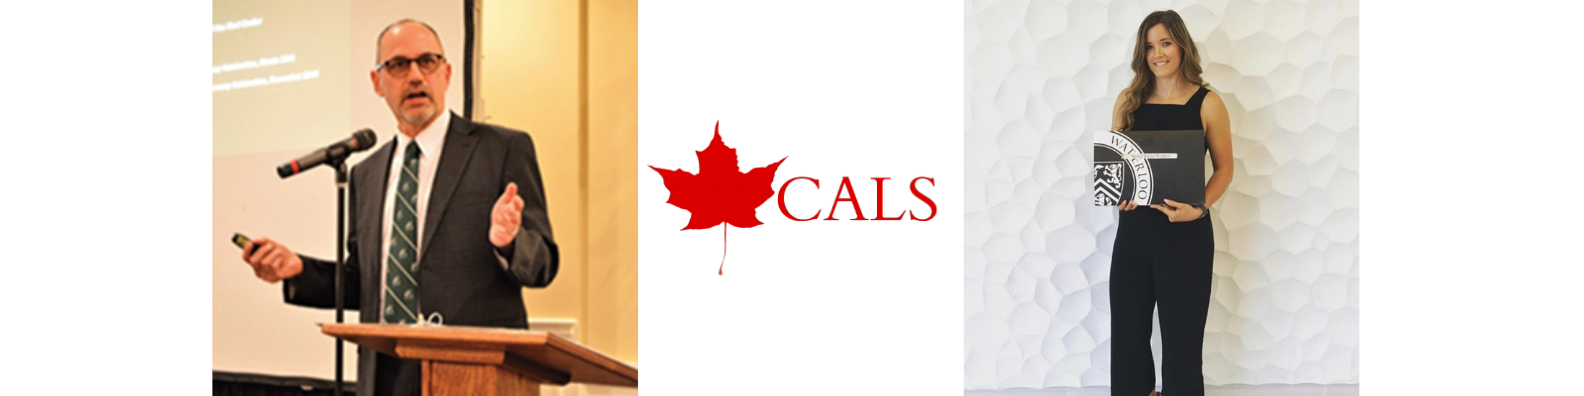 CALS red maple leaf logo above a photo of Mark Havitz presenting at a podium and a photo of Jaylyn Leighton holding her degree